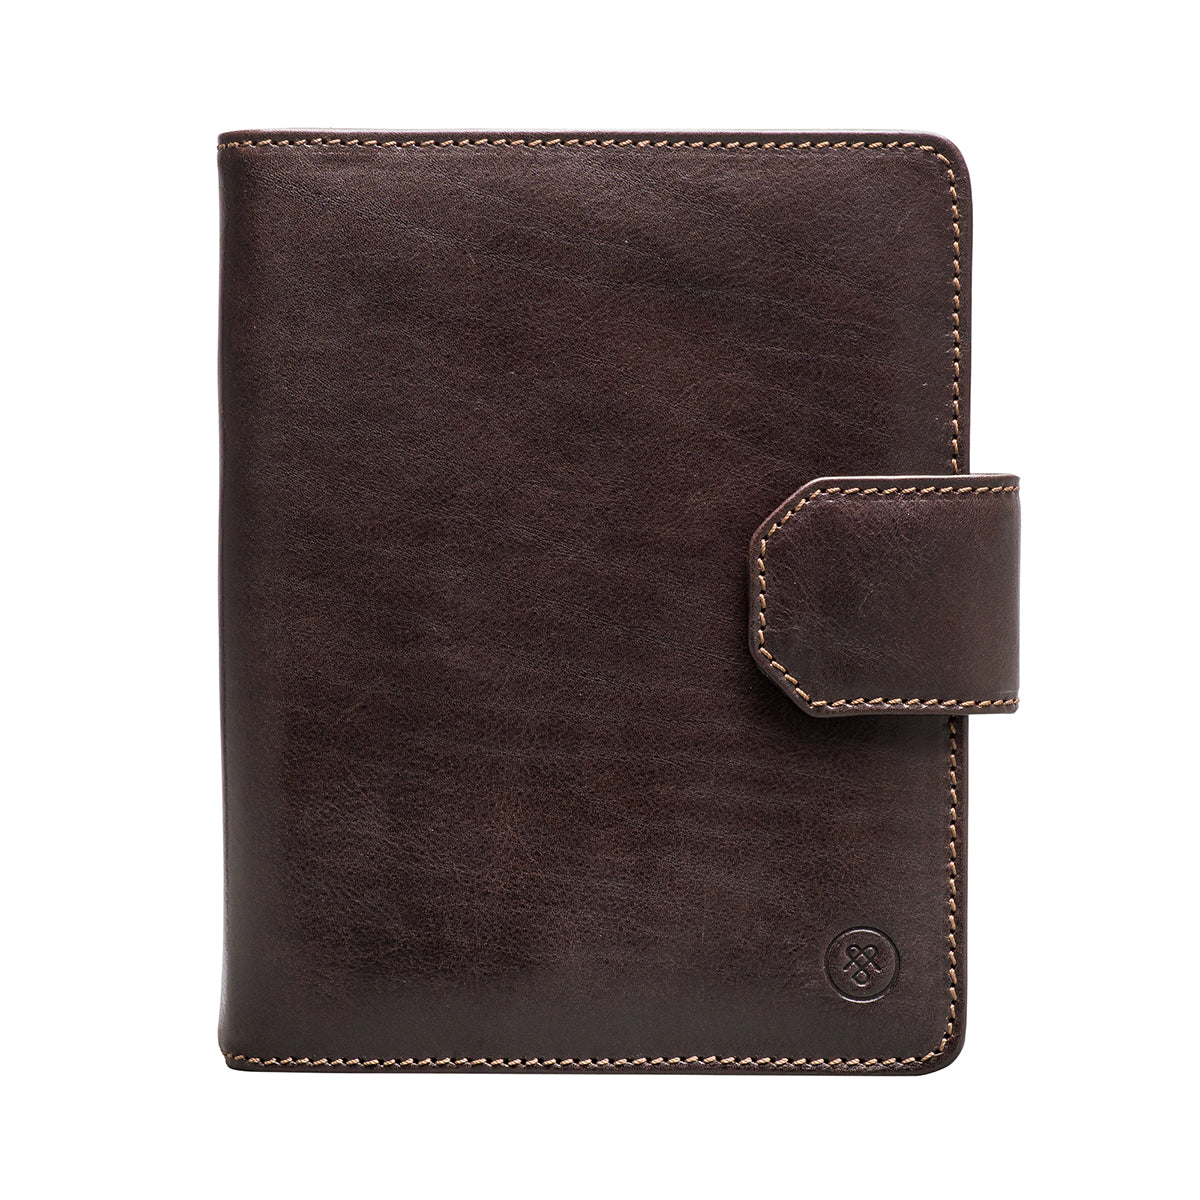 Image 1 of the 'Mozzano' Dark Chocolate Veg-Tanned Leather A5 Padfolio